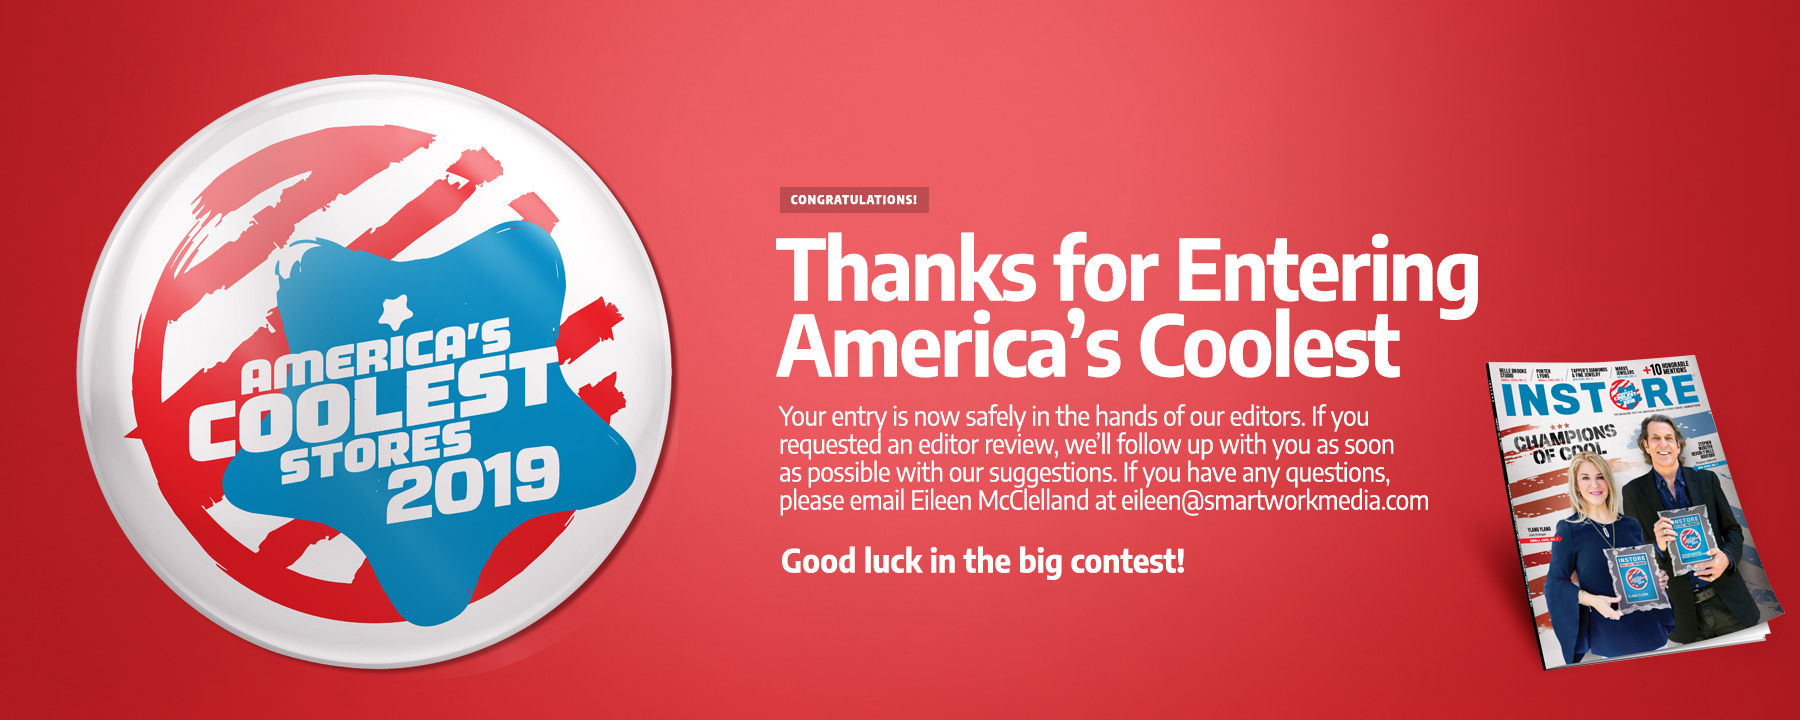 America's Coolest Thank You Page 2019